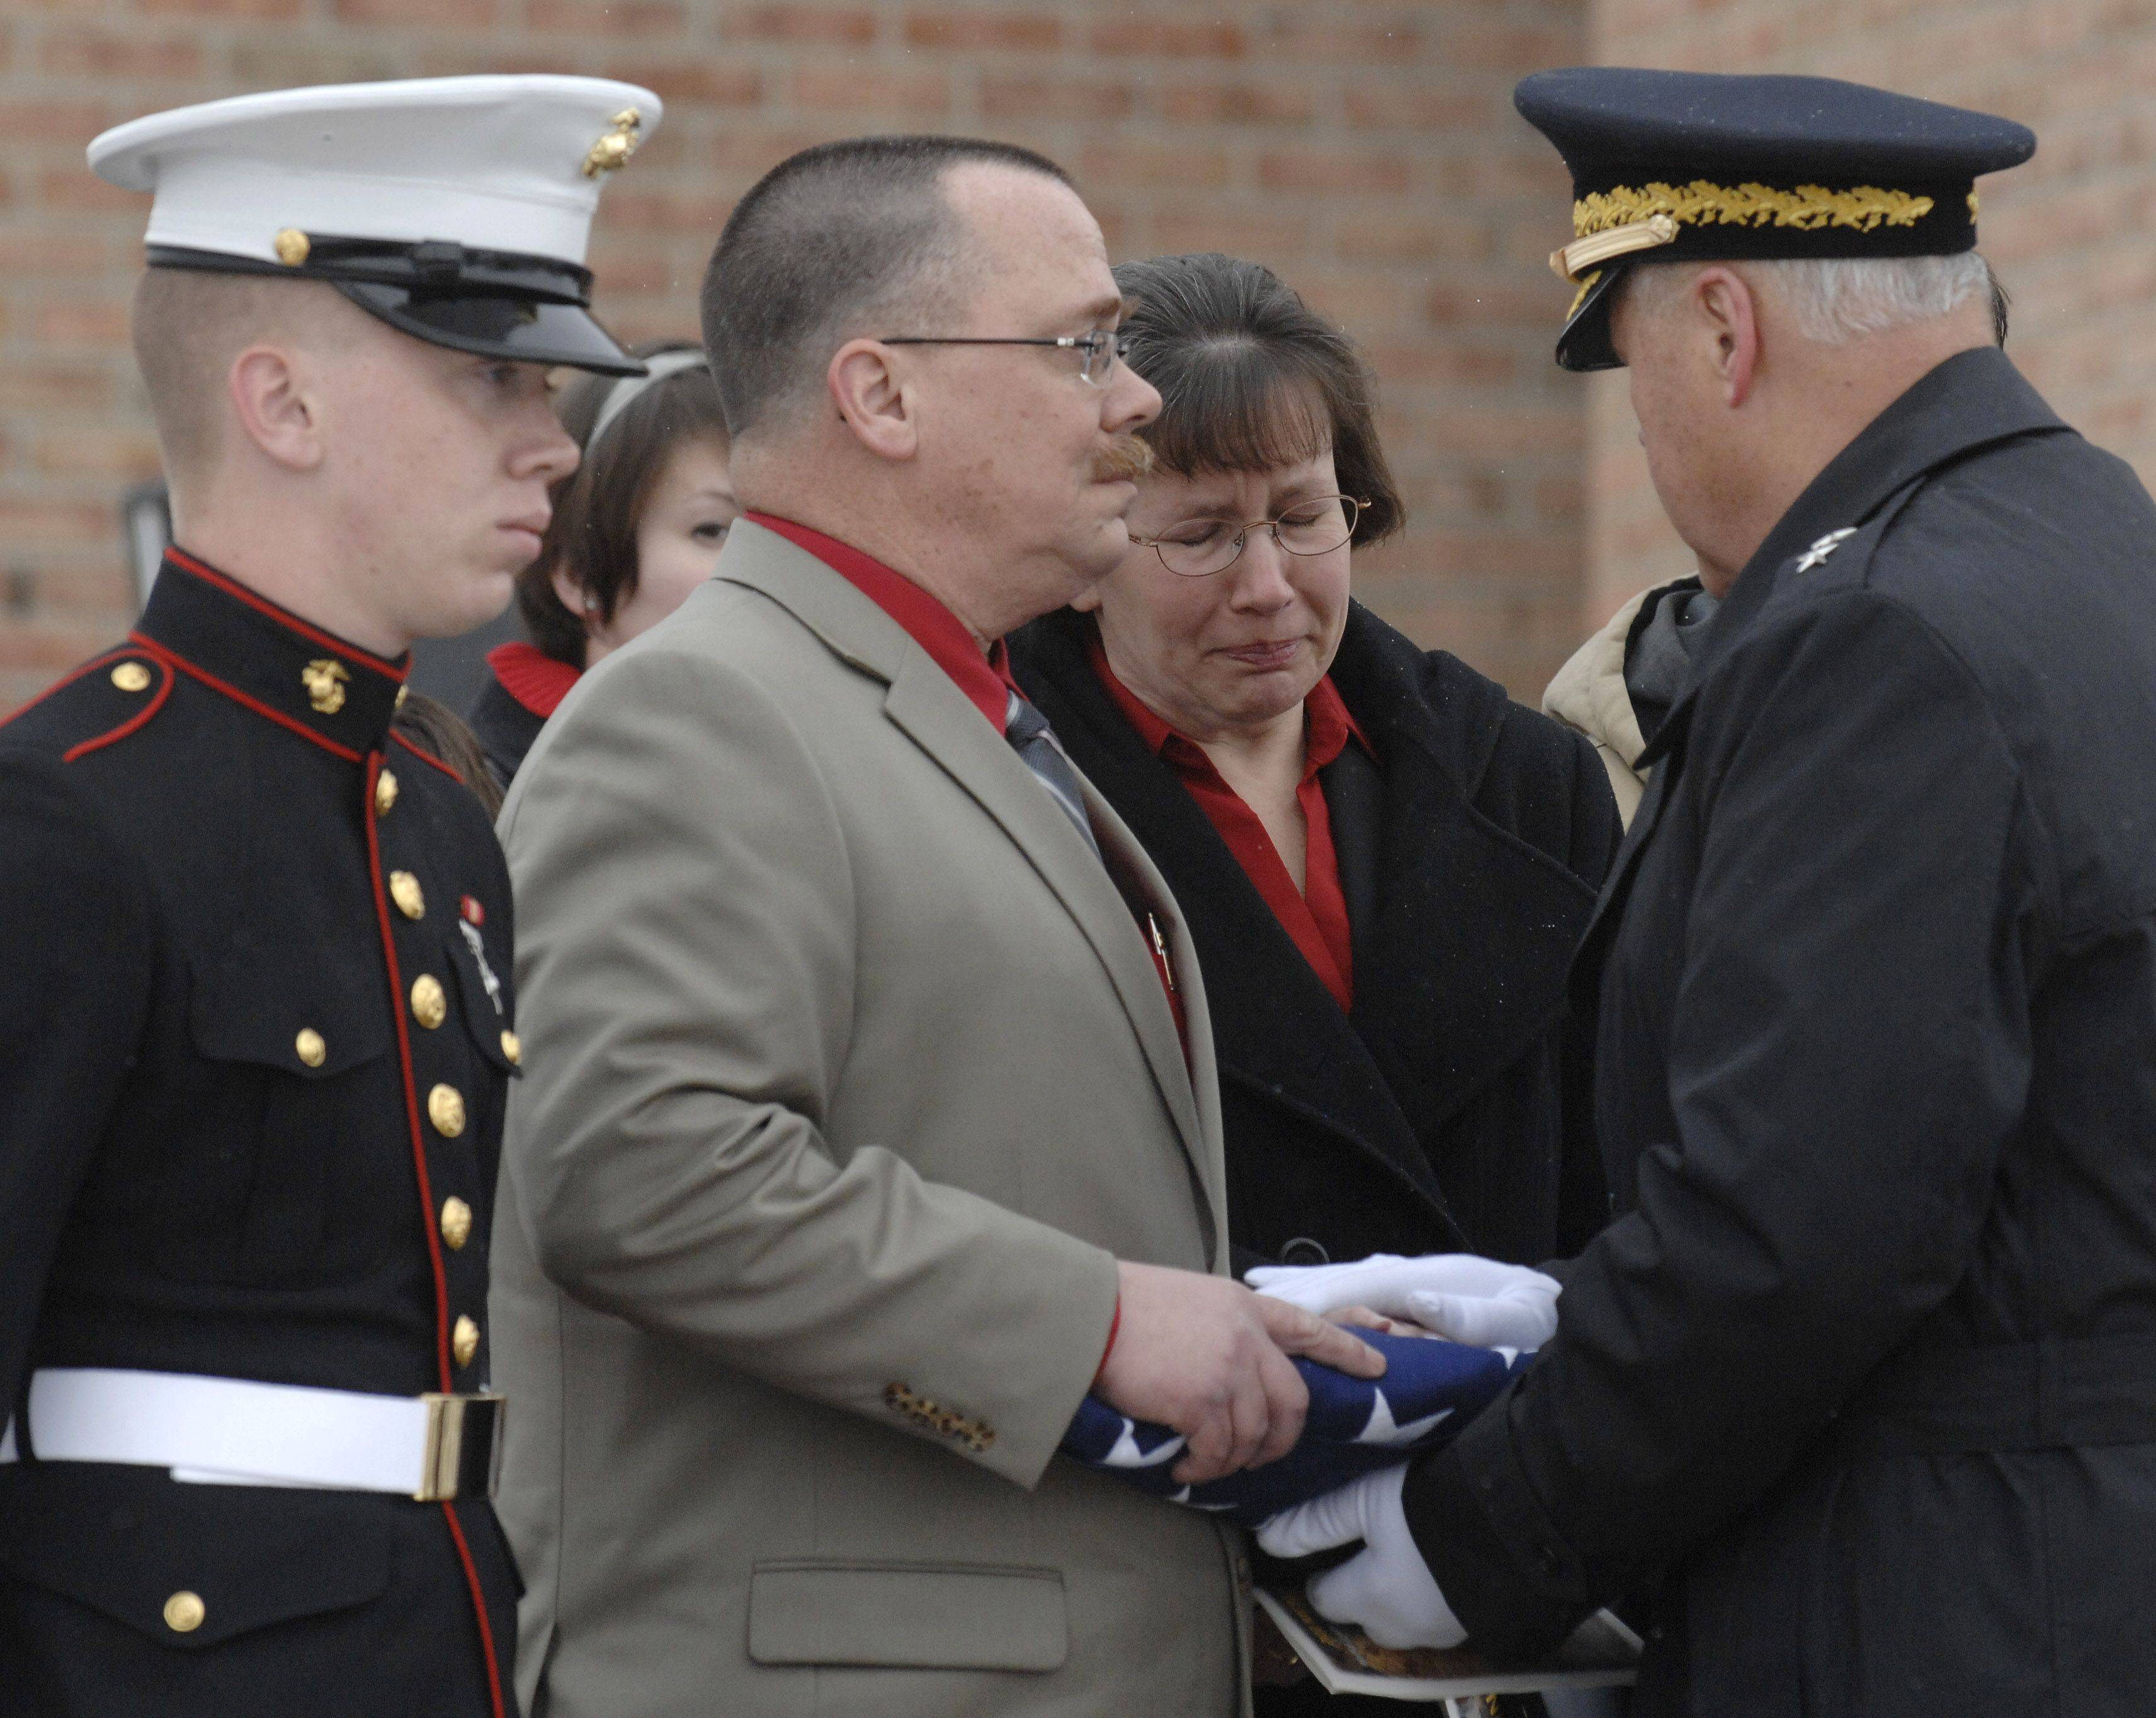 Bob and Mary Patterson, flanked by son Carl, left, are presented with the flag which draped their son Spc. Christopher A. Patterson's casket by Major General R. Martin Umbarger of the Indiana National Guard after his funeral and full military honors in Batavia on Saturday, January 21.